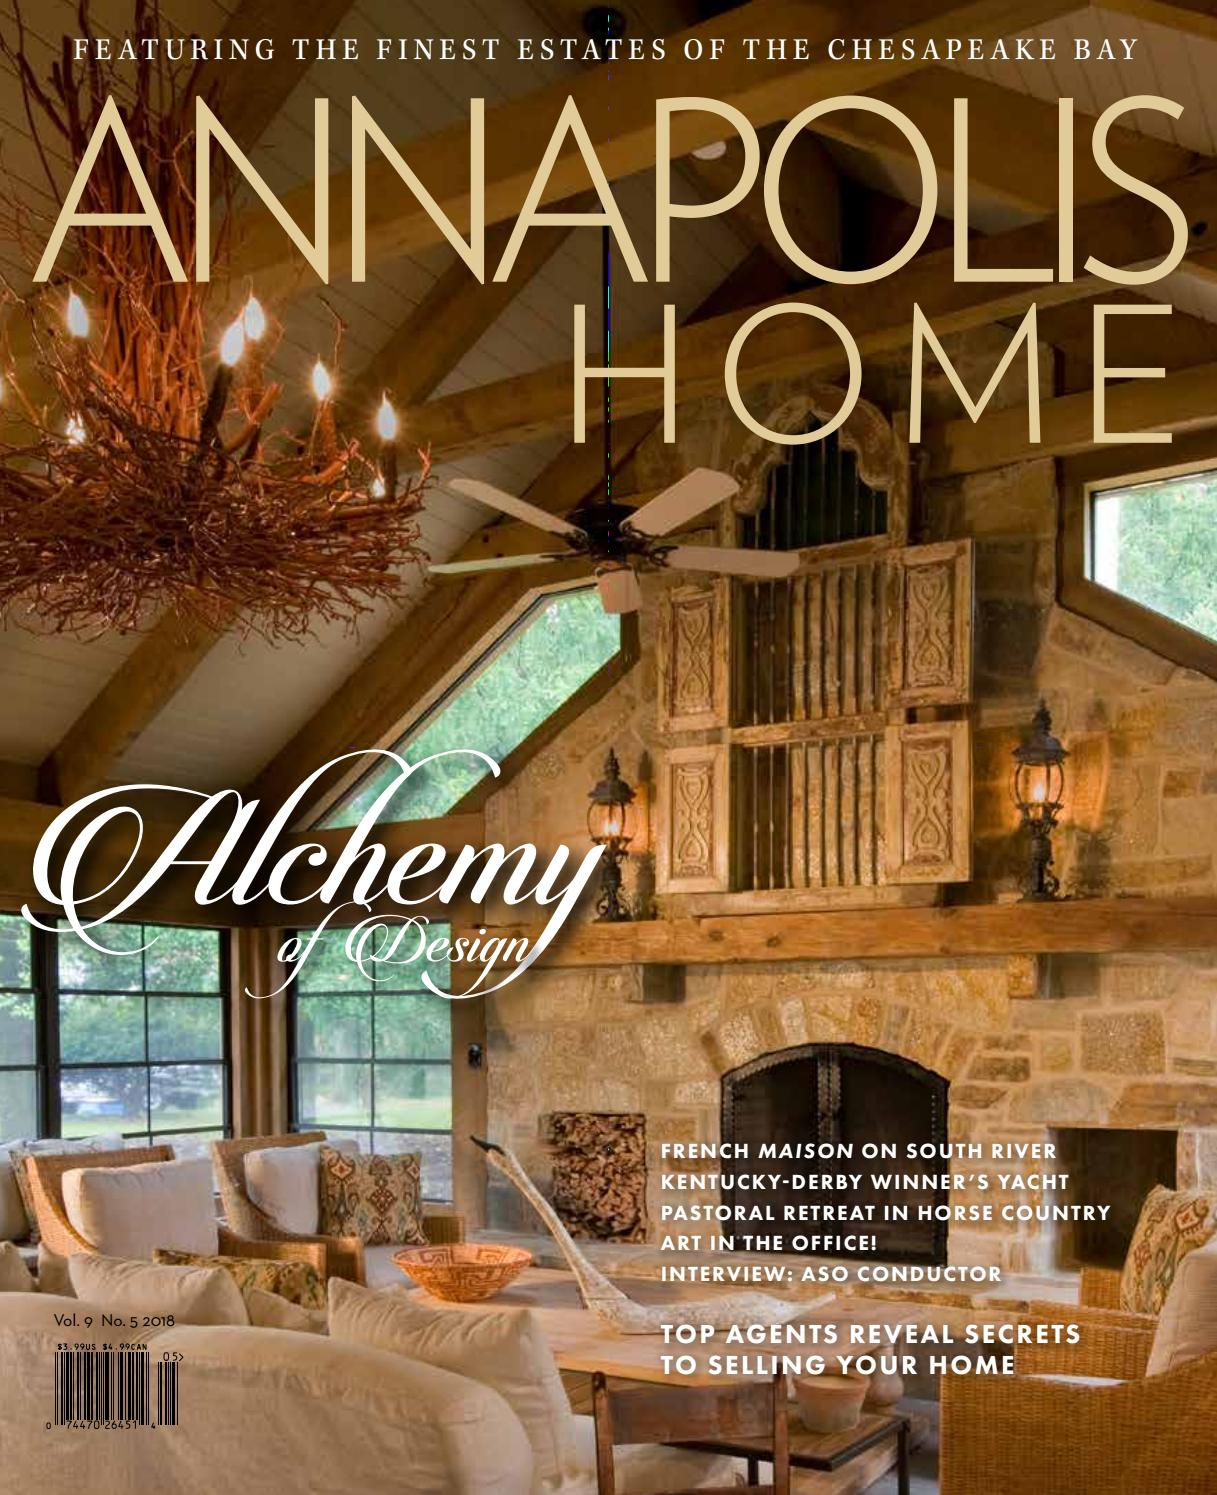 Maison Decor Valladolid Annapolis Home Sept Oct 2018 By Th Media Issuu